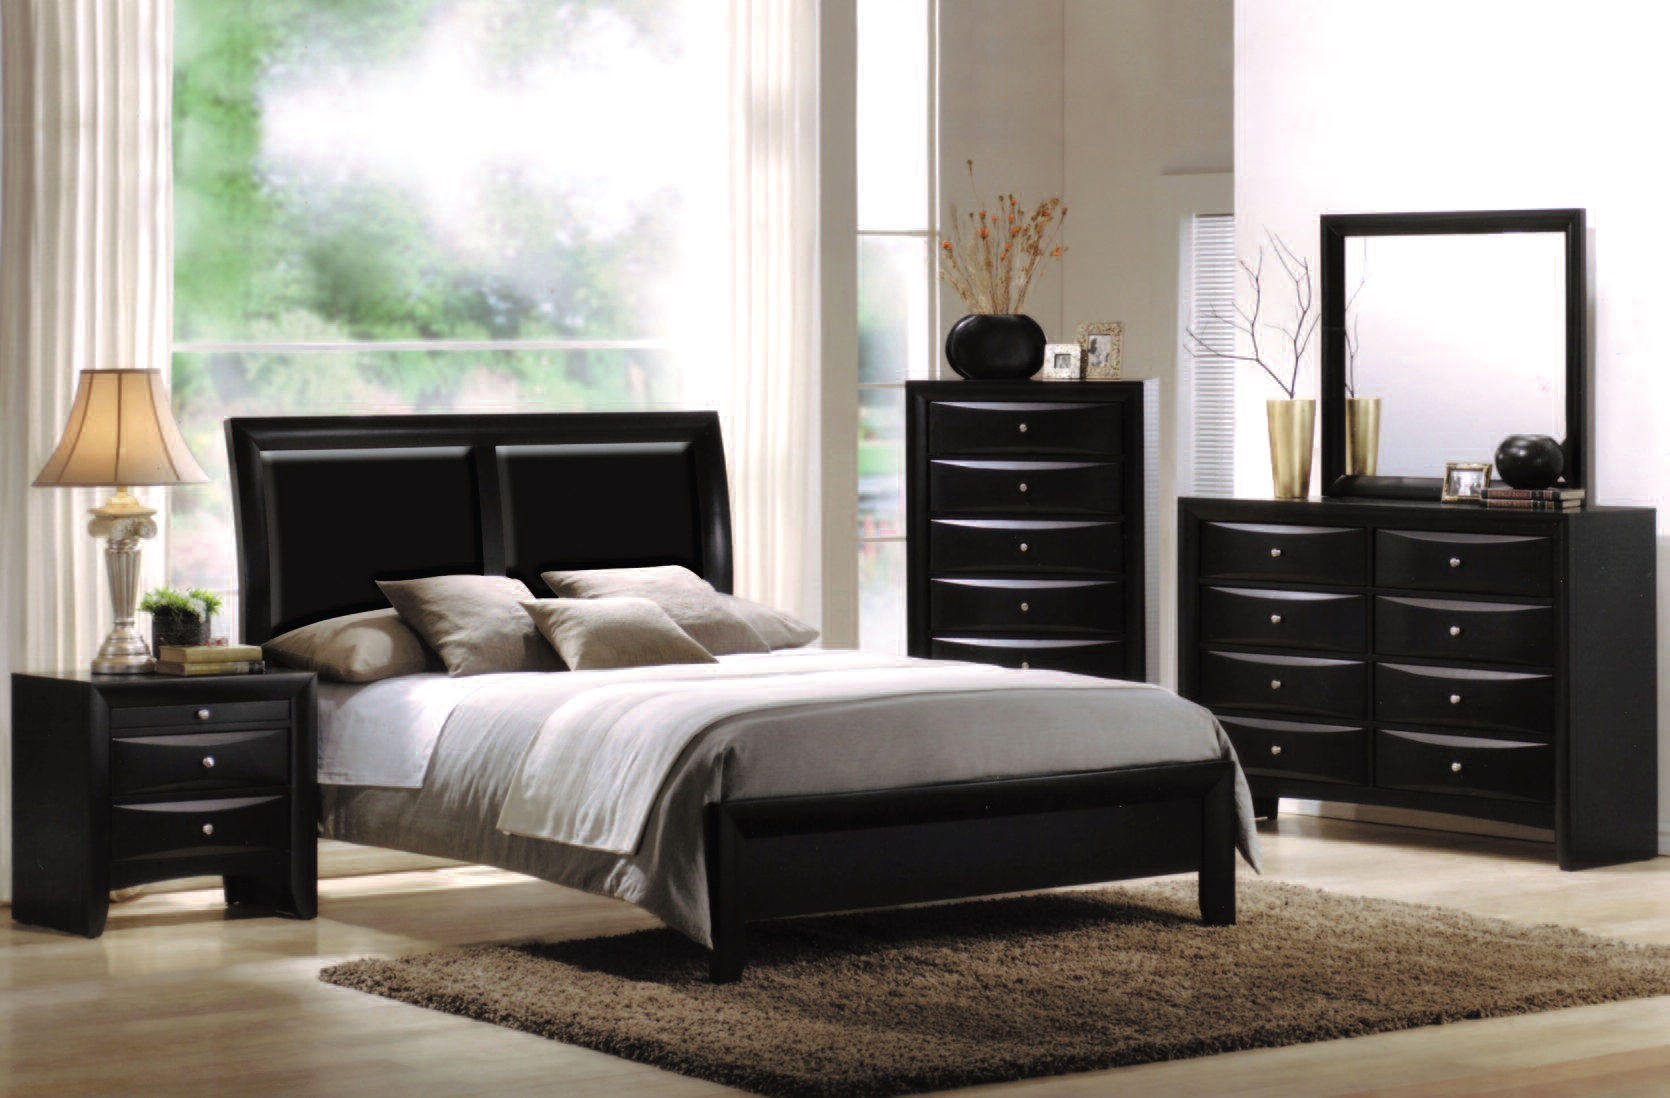 Contemporary Bedroom Set London Black By Acme Furniture: Acme Furniture Ireland Black 2pc Bedroom Set With Queen